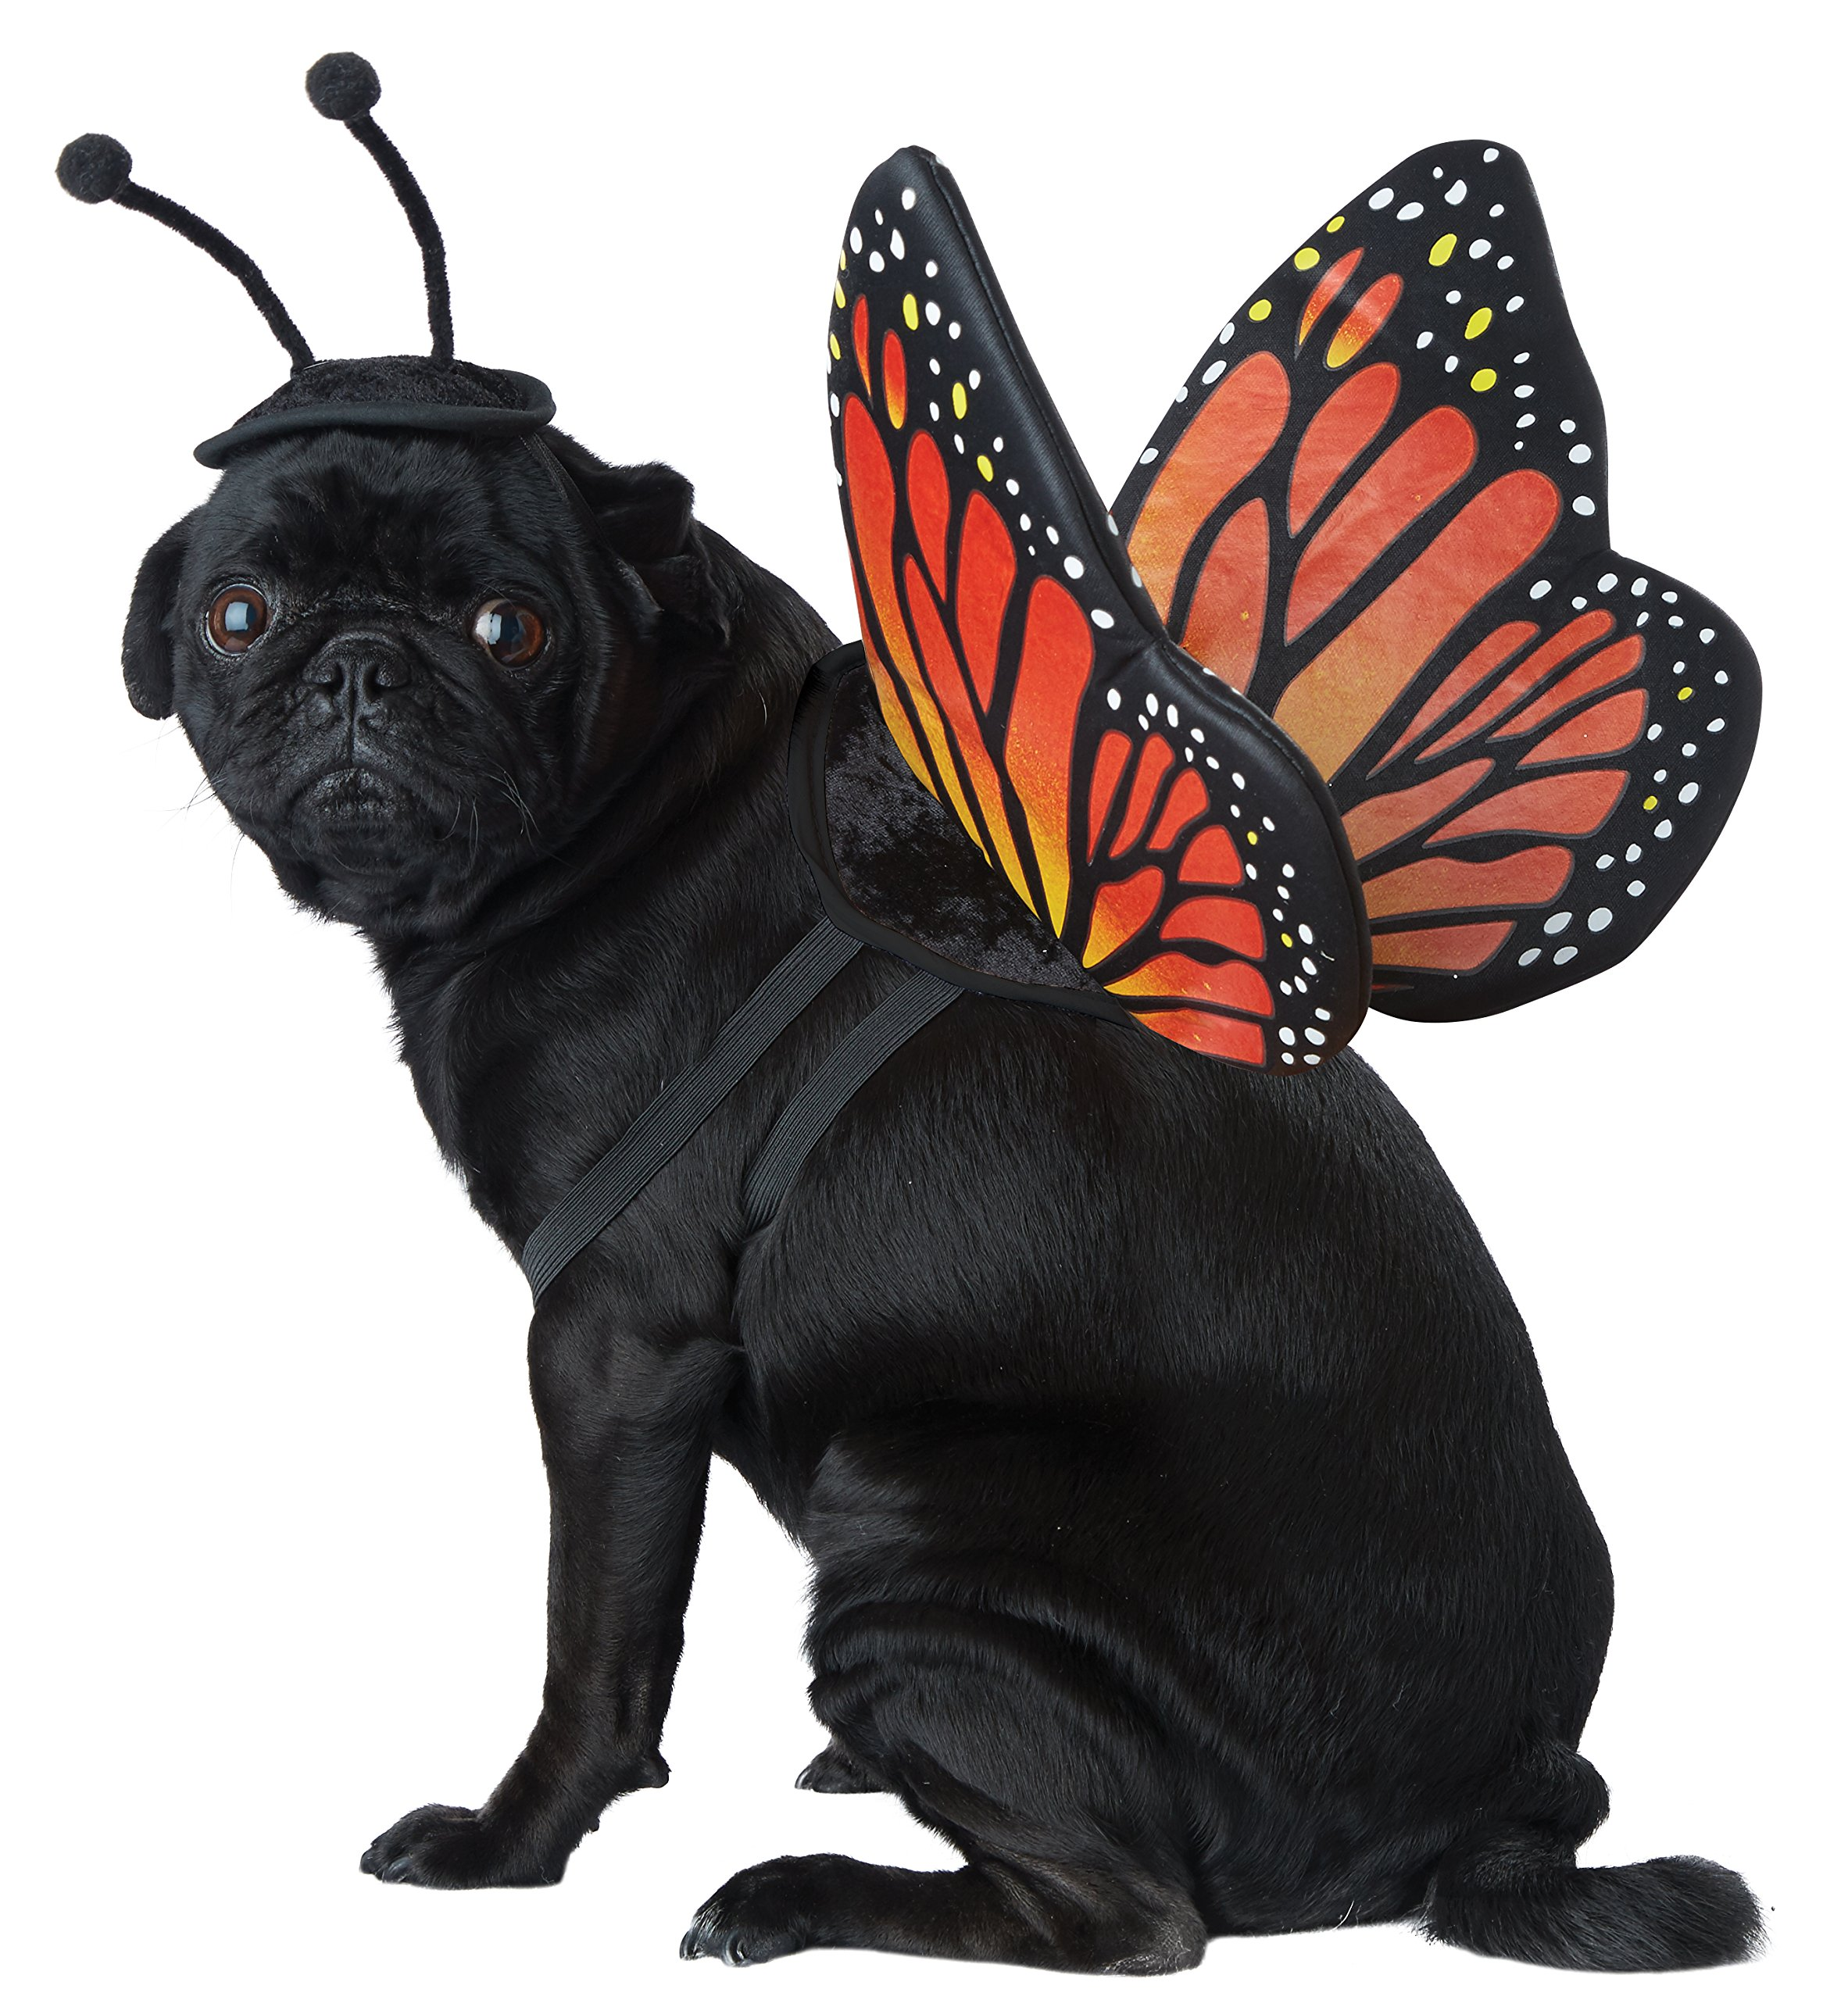 California Costumes Monarch Butterfly Dog Costumes, Pet, Black/Orange, Large by CALIFORNIA COSTUME COLLECTIONS